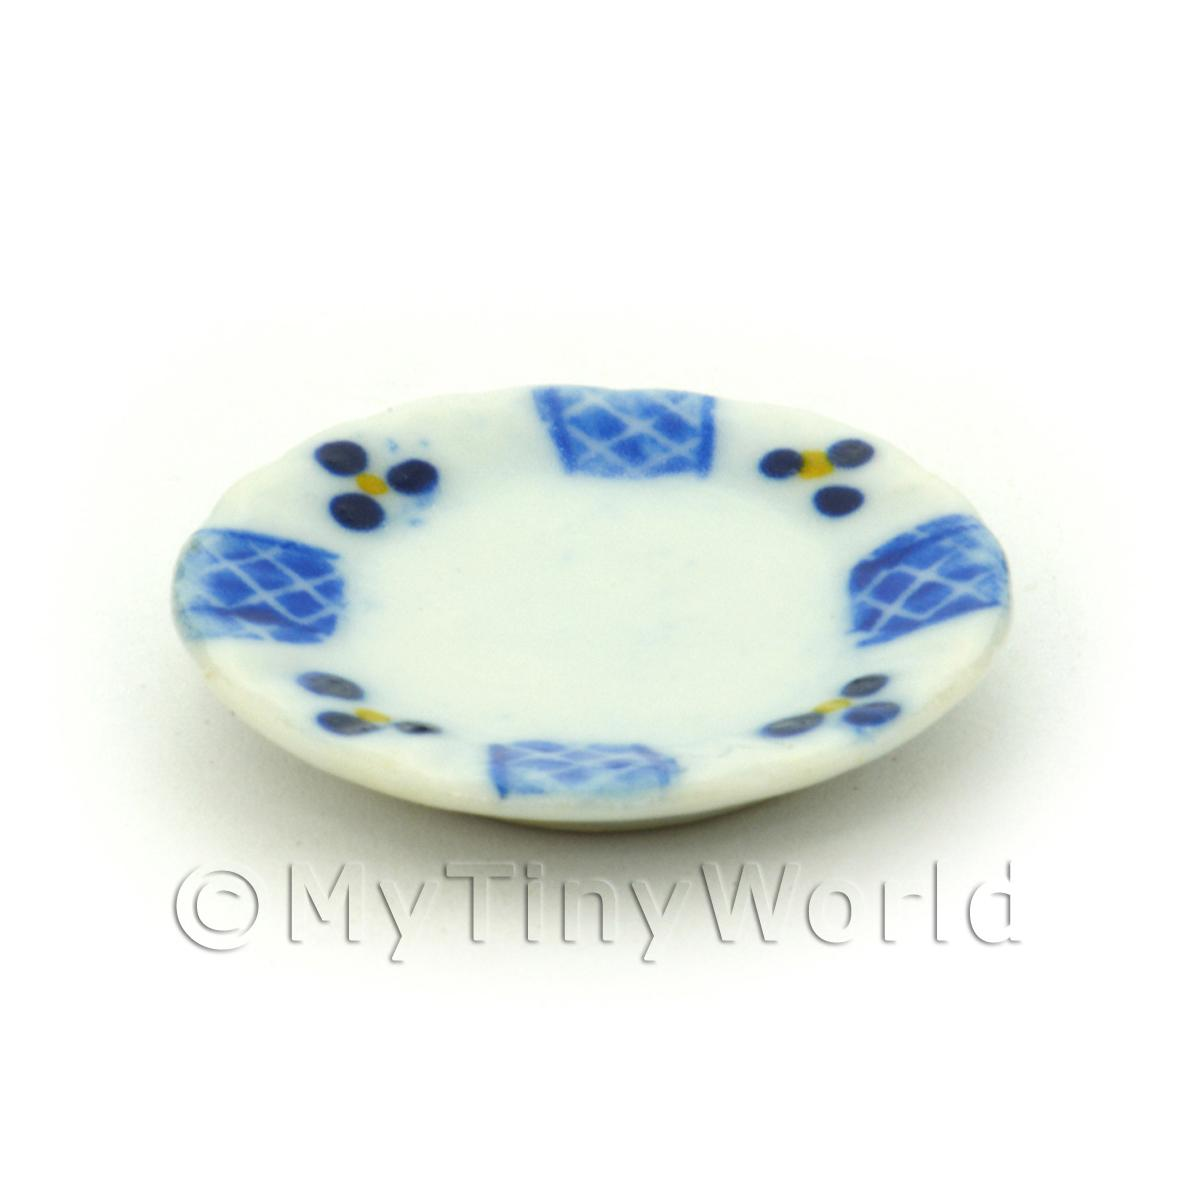 Dolls House Miniature 20mm Blue Lace Design Ceramic Plate